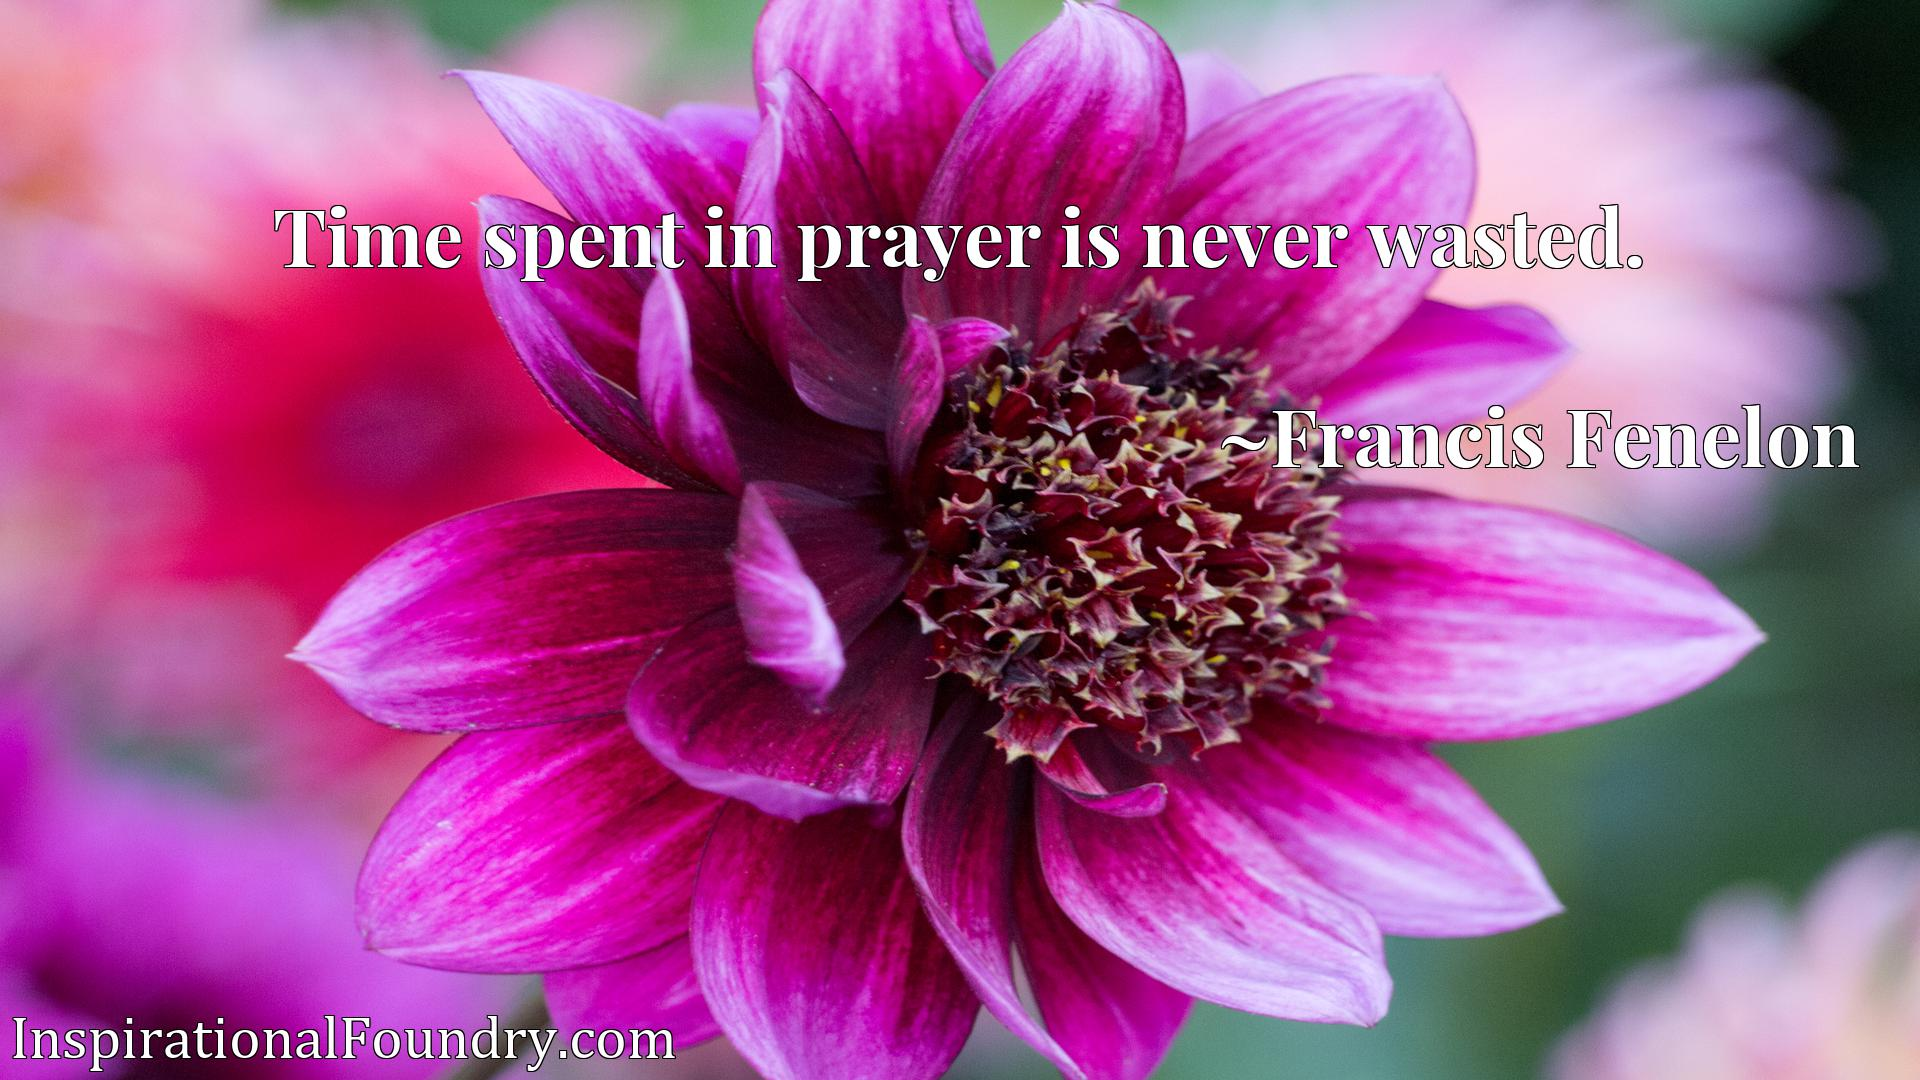 Time spent in prayer is never wasted.